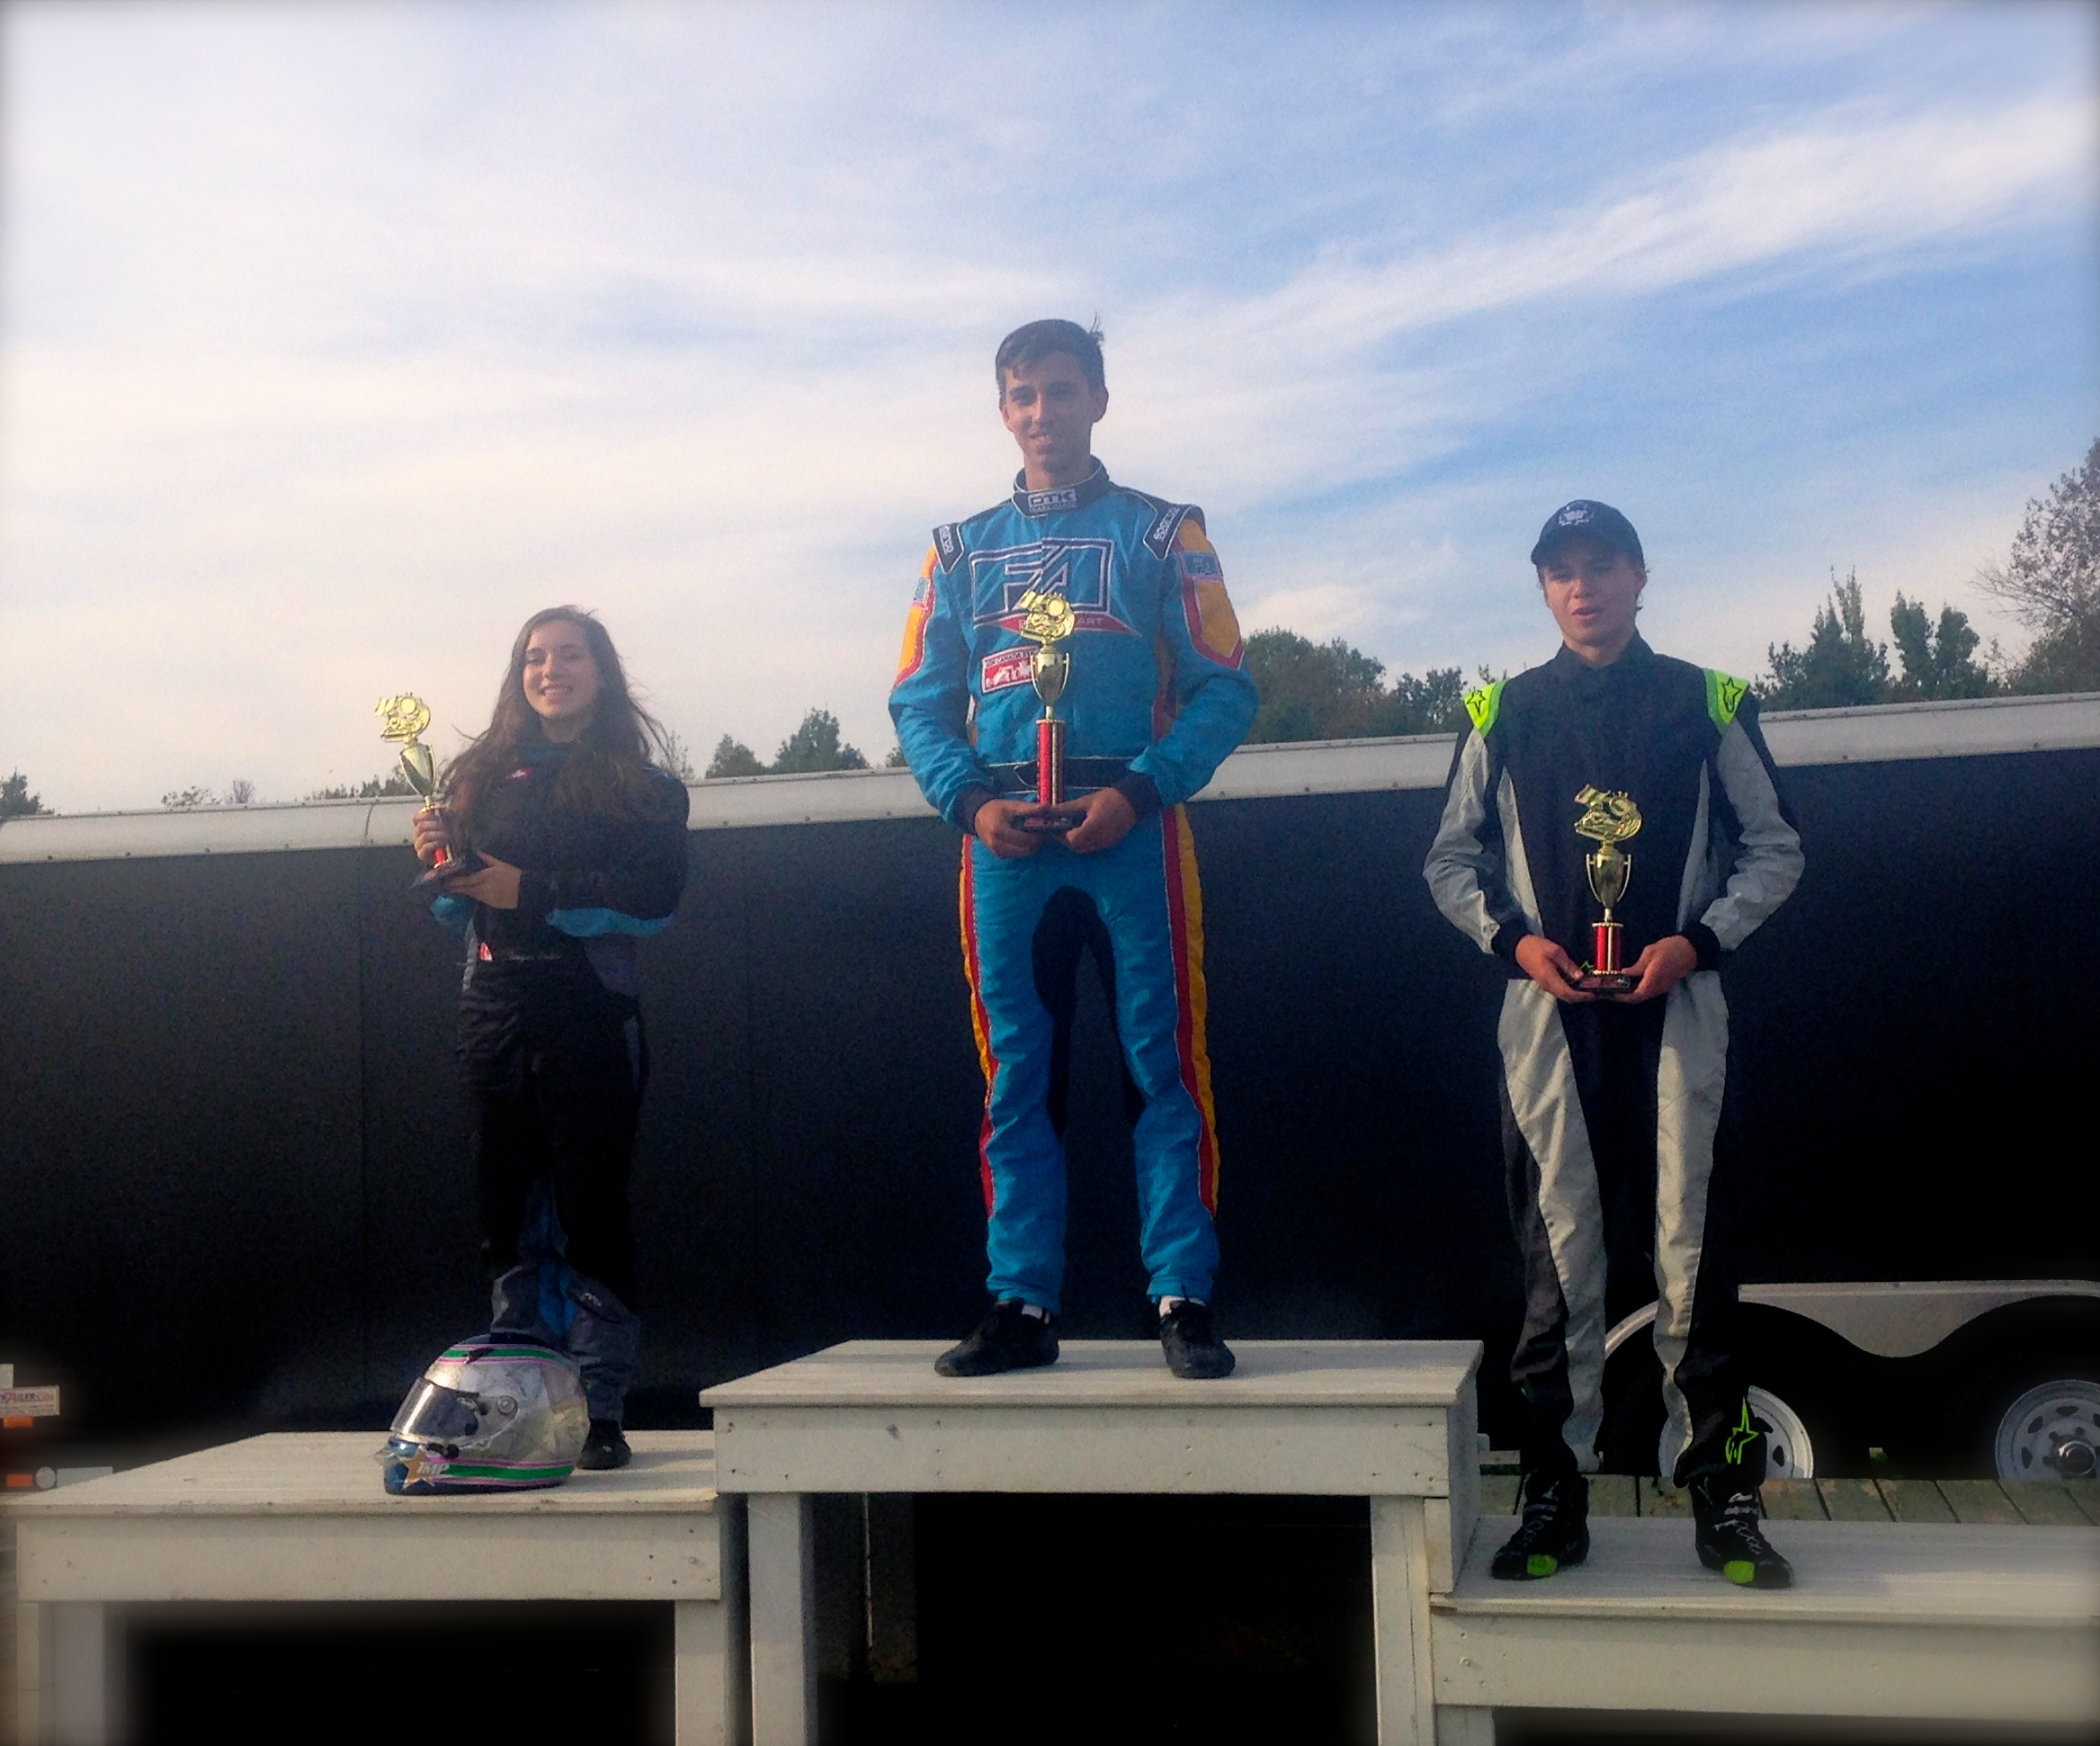 Finished P2 and on the podium in my first Rotax Senior race